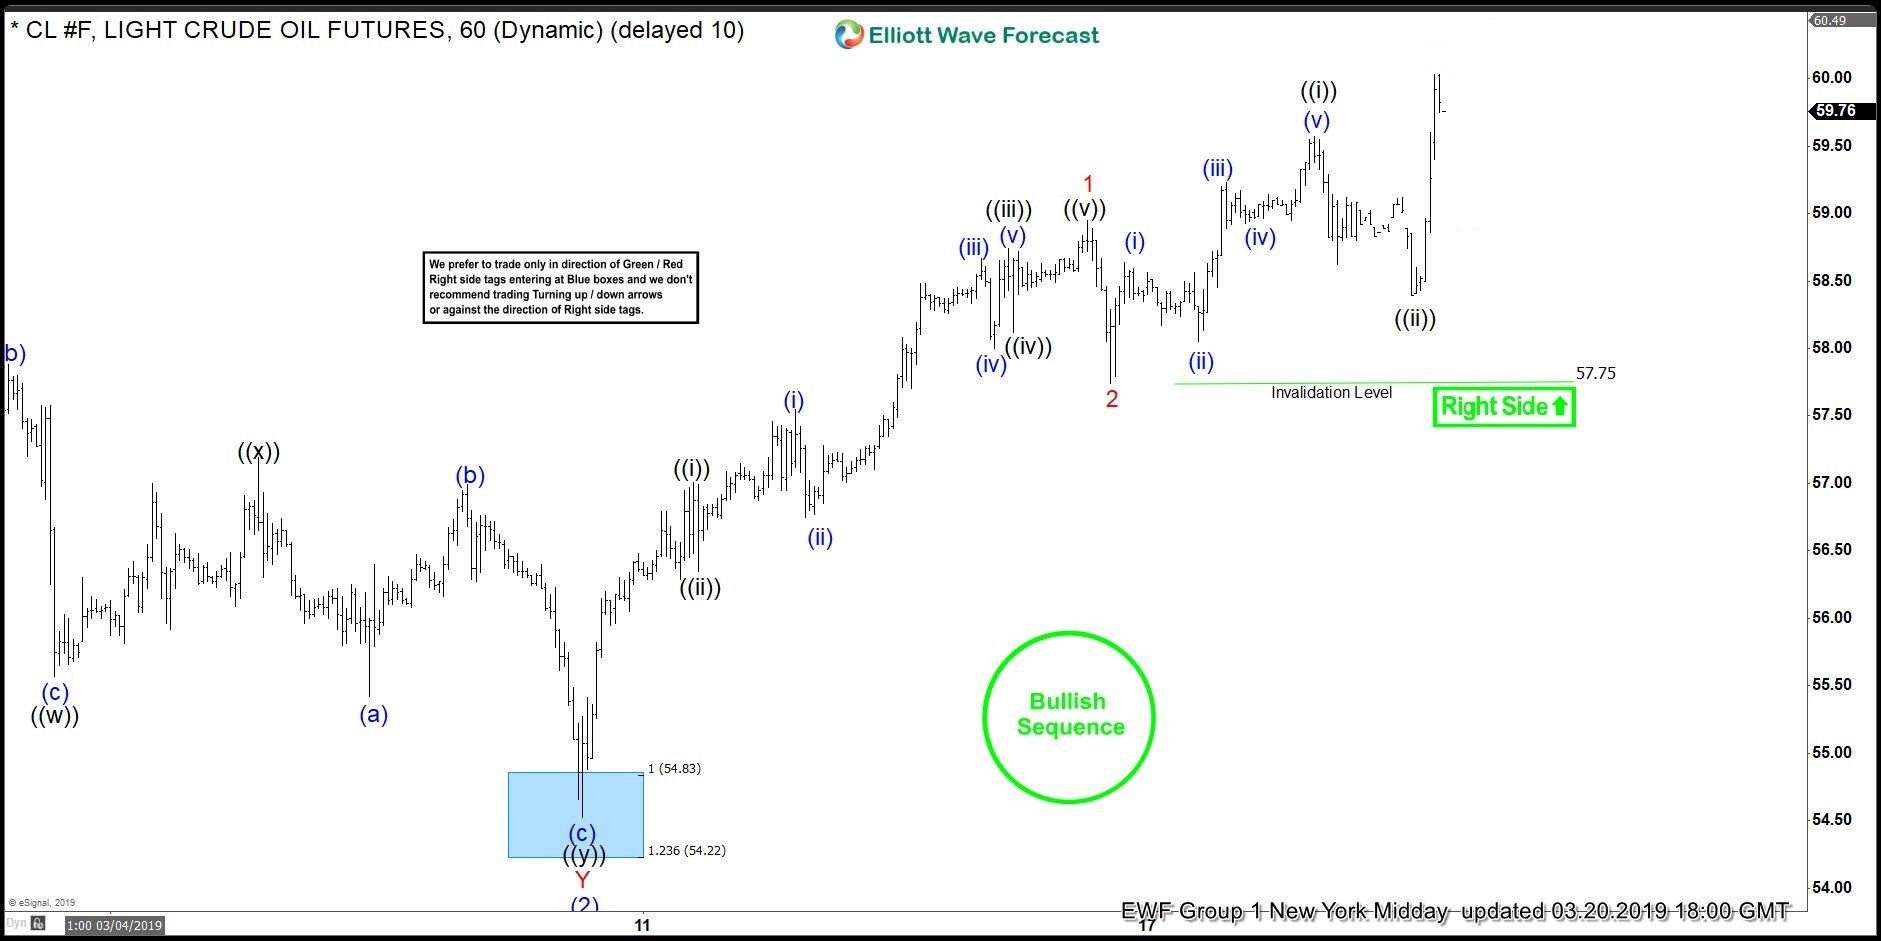 Elliott Wave Analysis: Bullish Sequence Pushing for Higher Prices in Oil